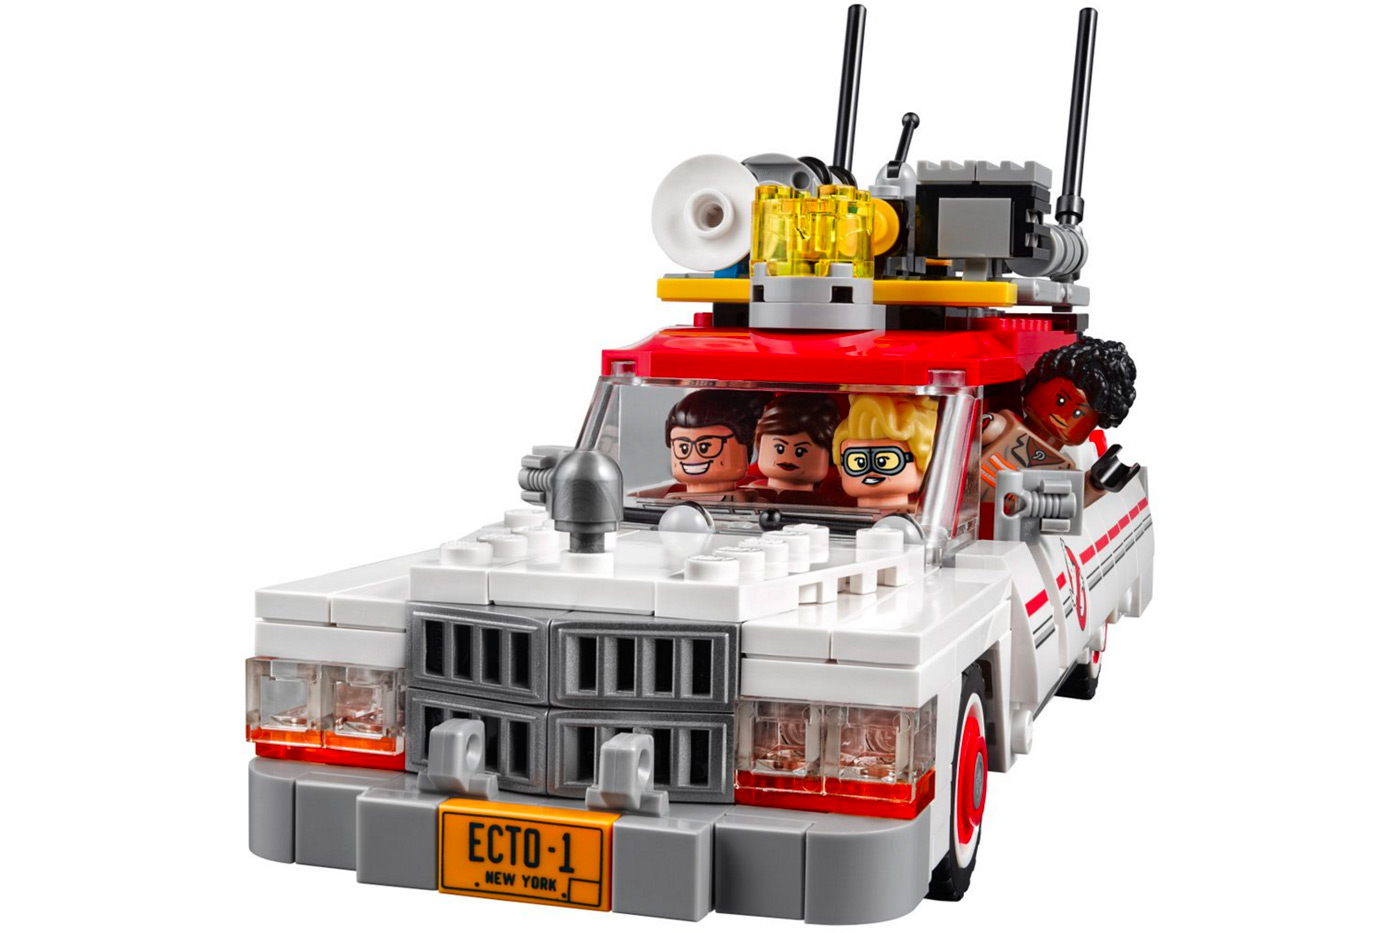 The new 'Ghostbusters' is getting its own LEGO set